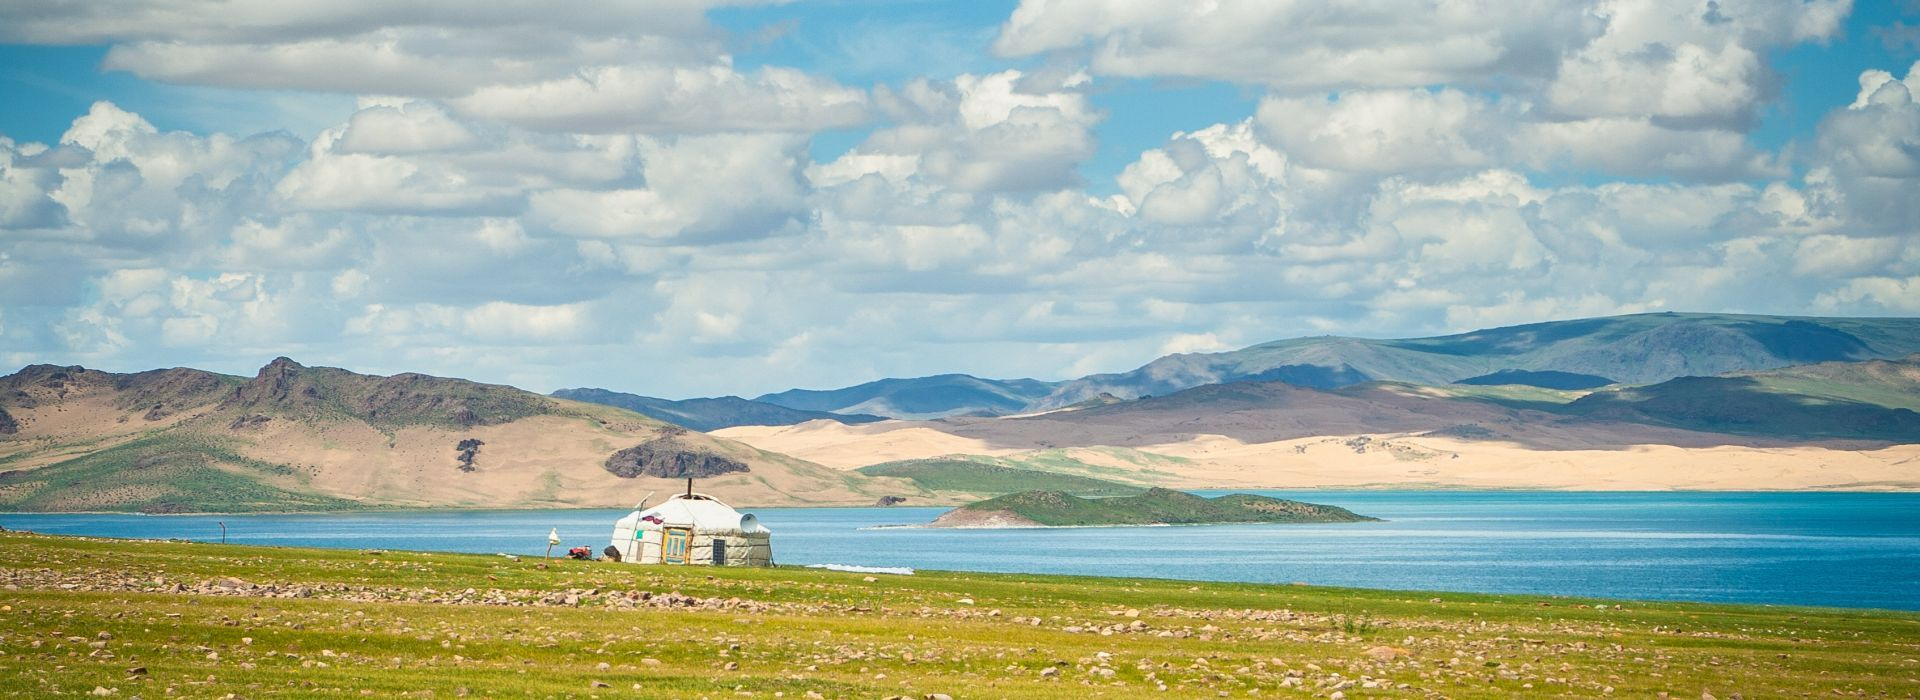 Adventure and sport activities Tours in Mongolia